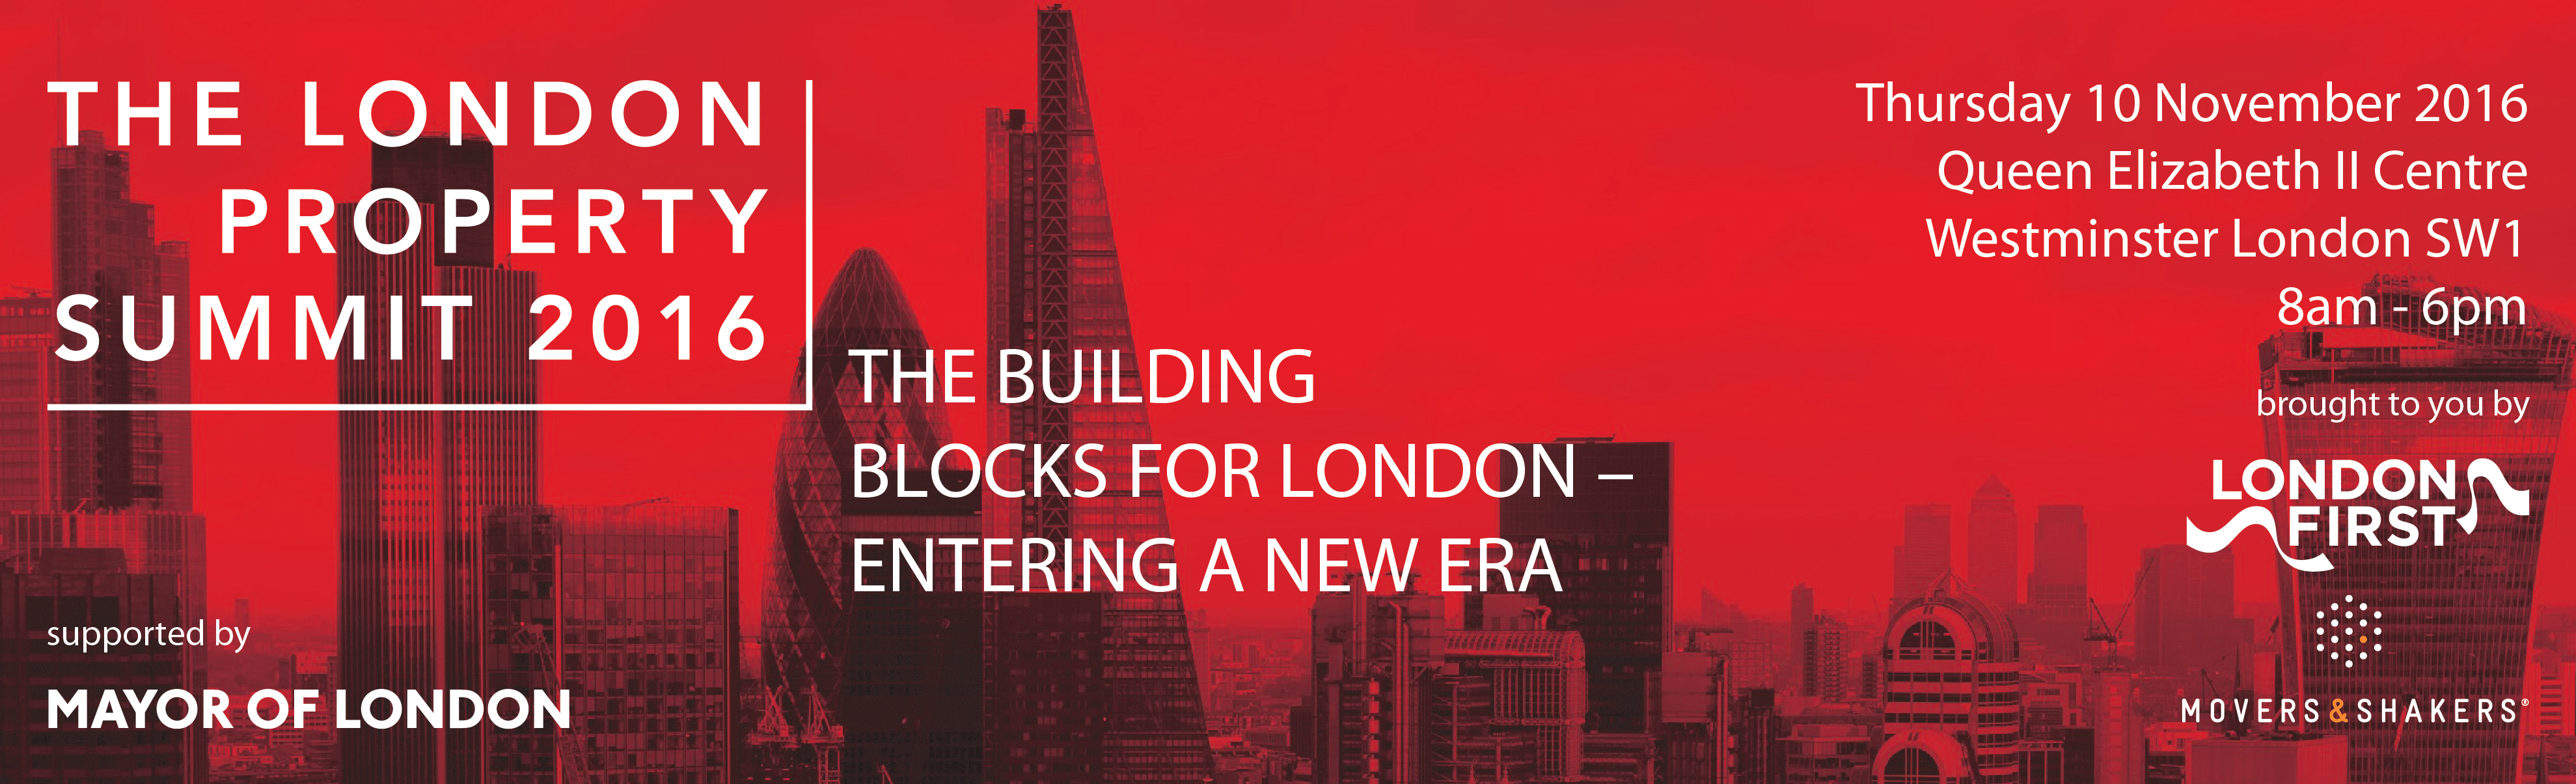 London Property Summit 2015